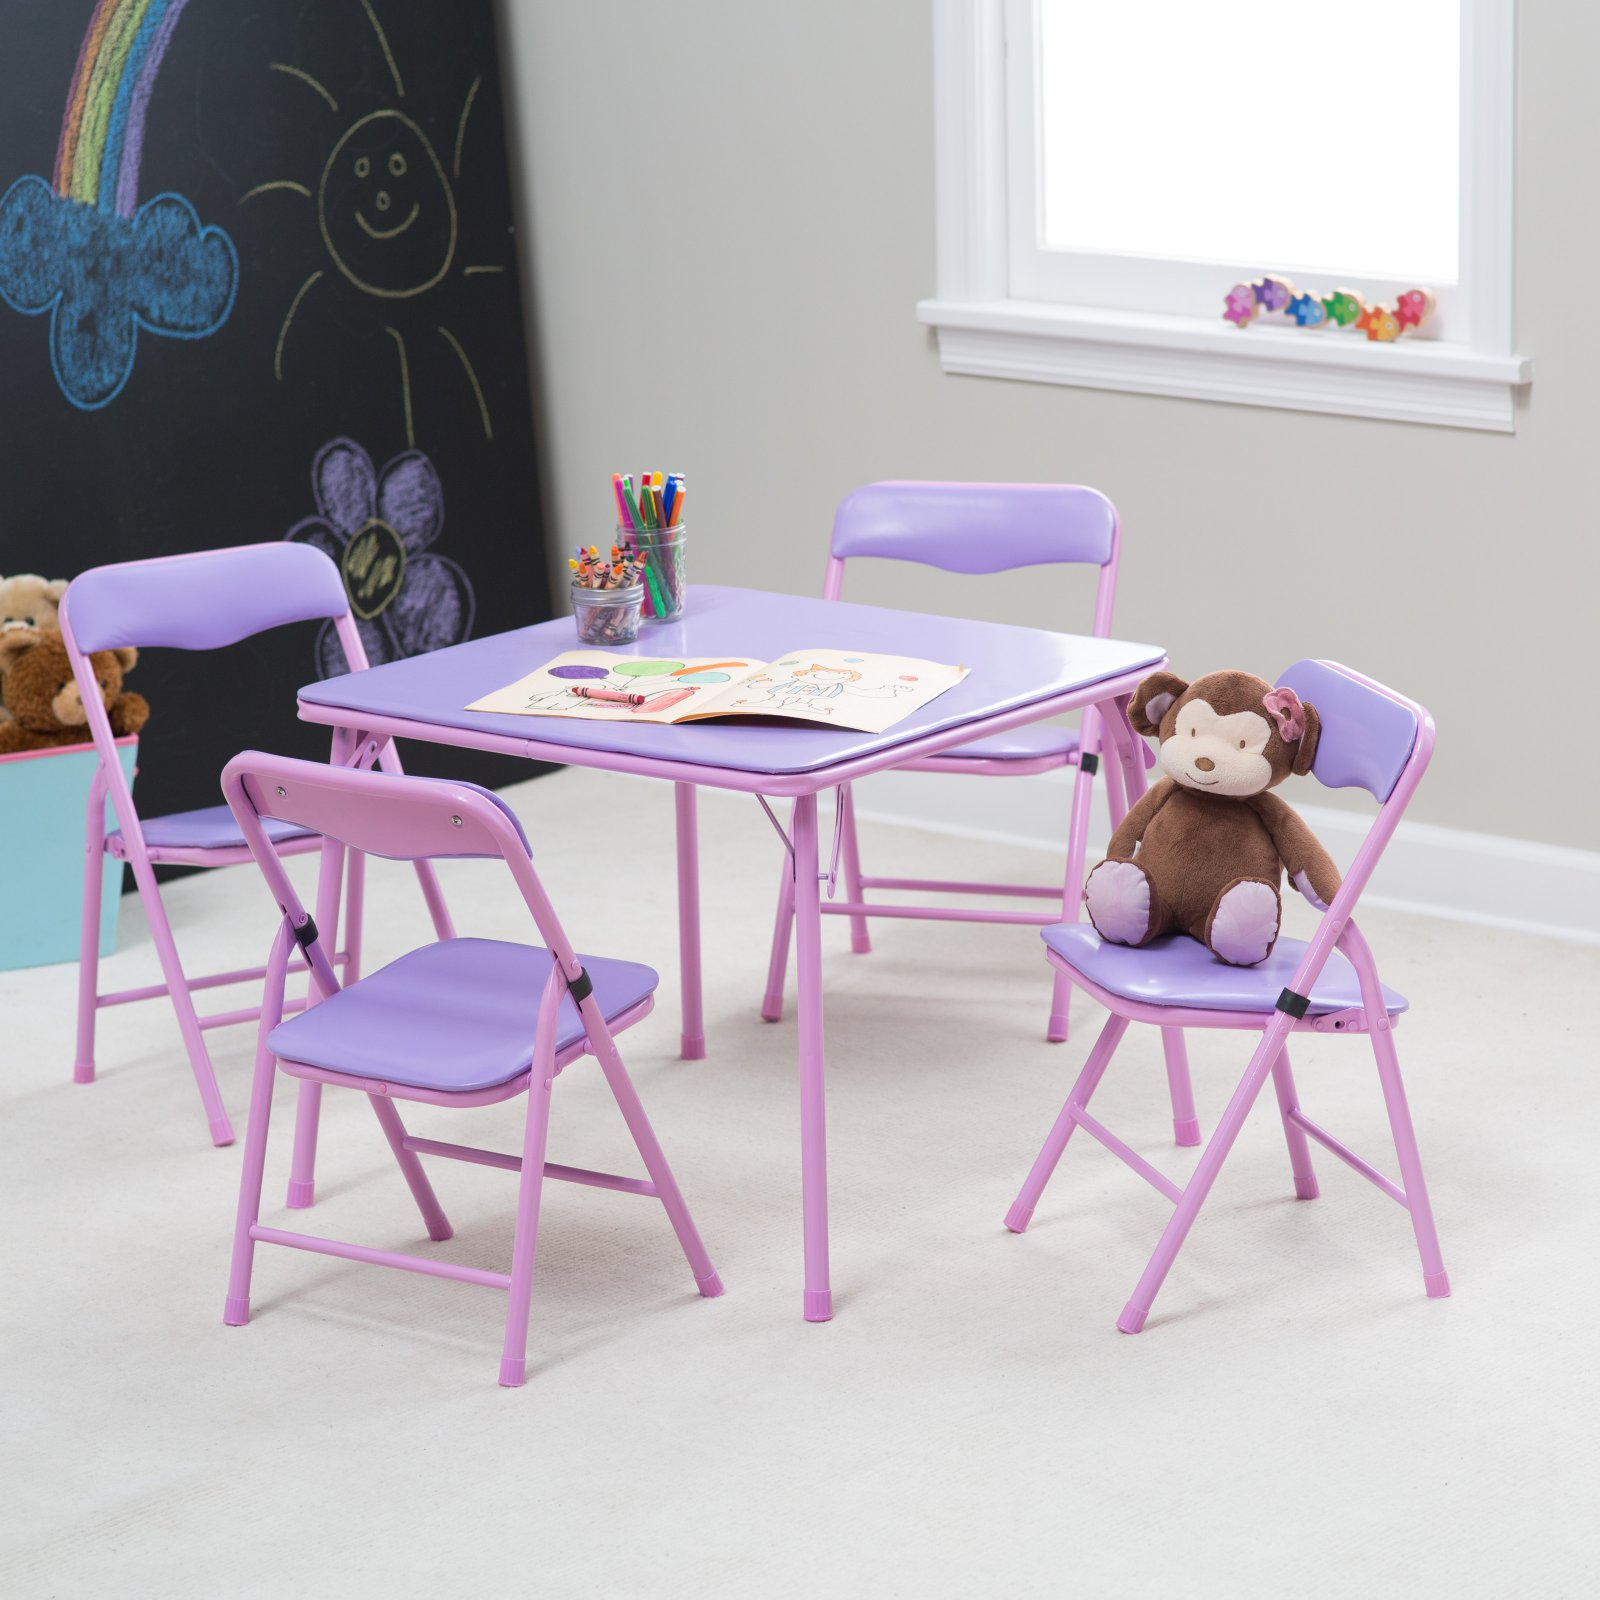 Childrens Folding Table And Chairs Showtime Childrens Folding Table And Chair Set